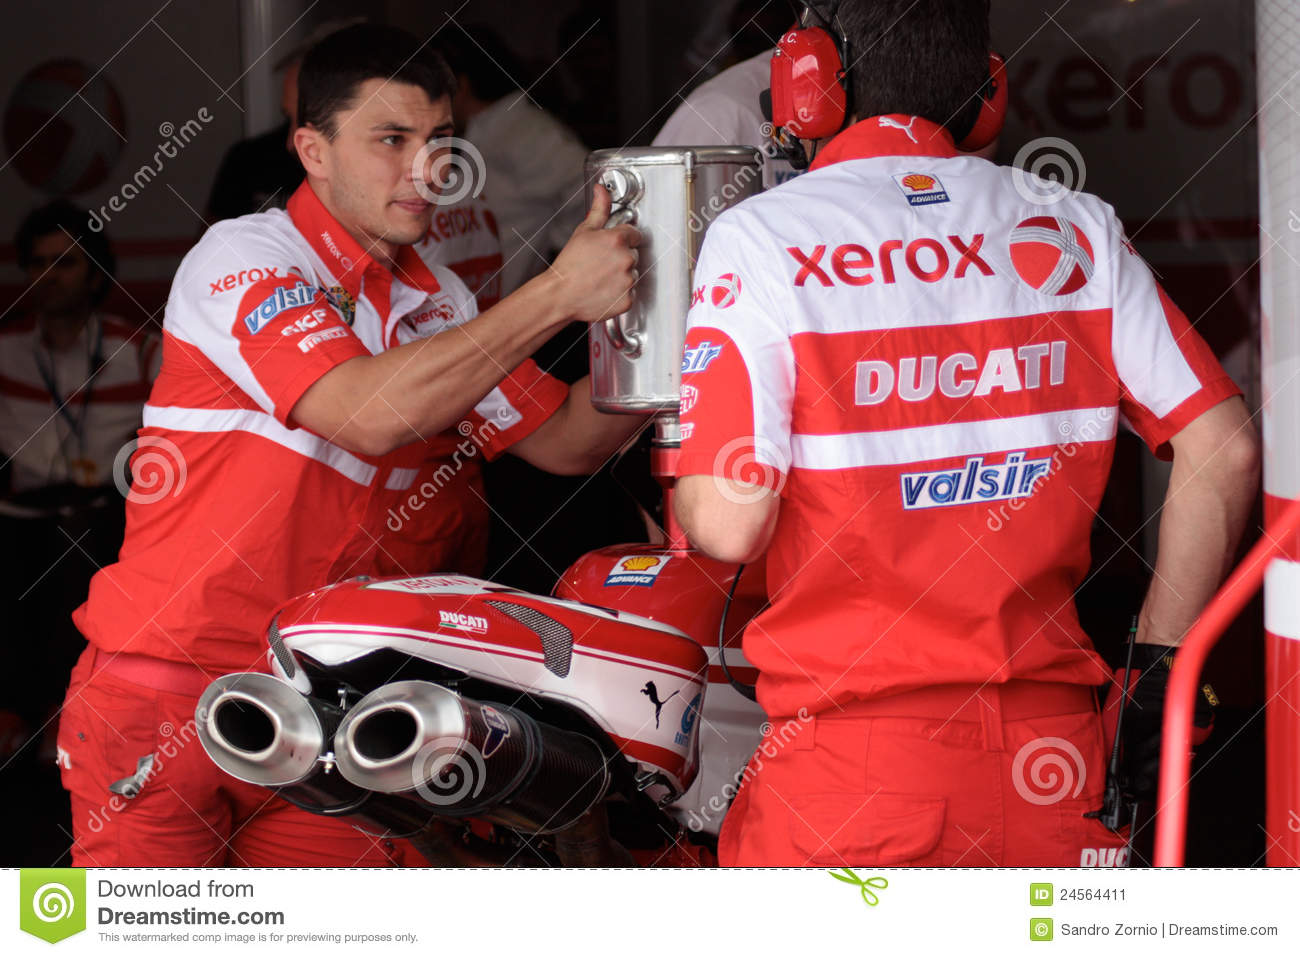 Filling gasoline Ducati 1998 Xerox team